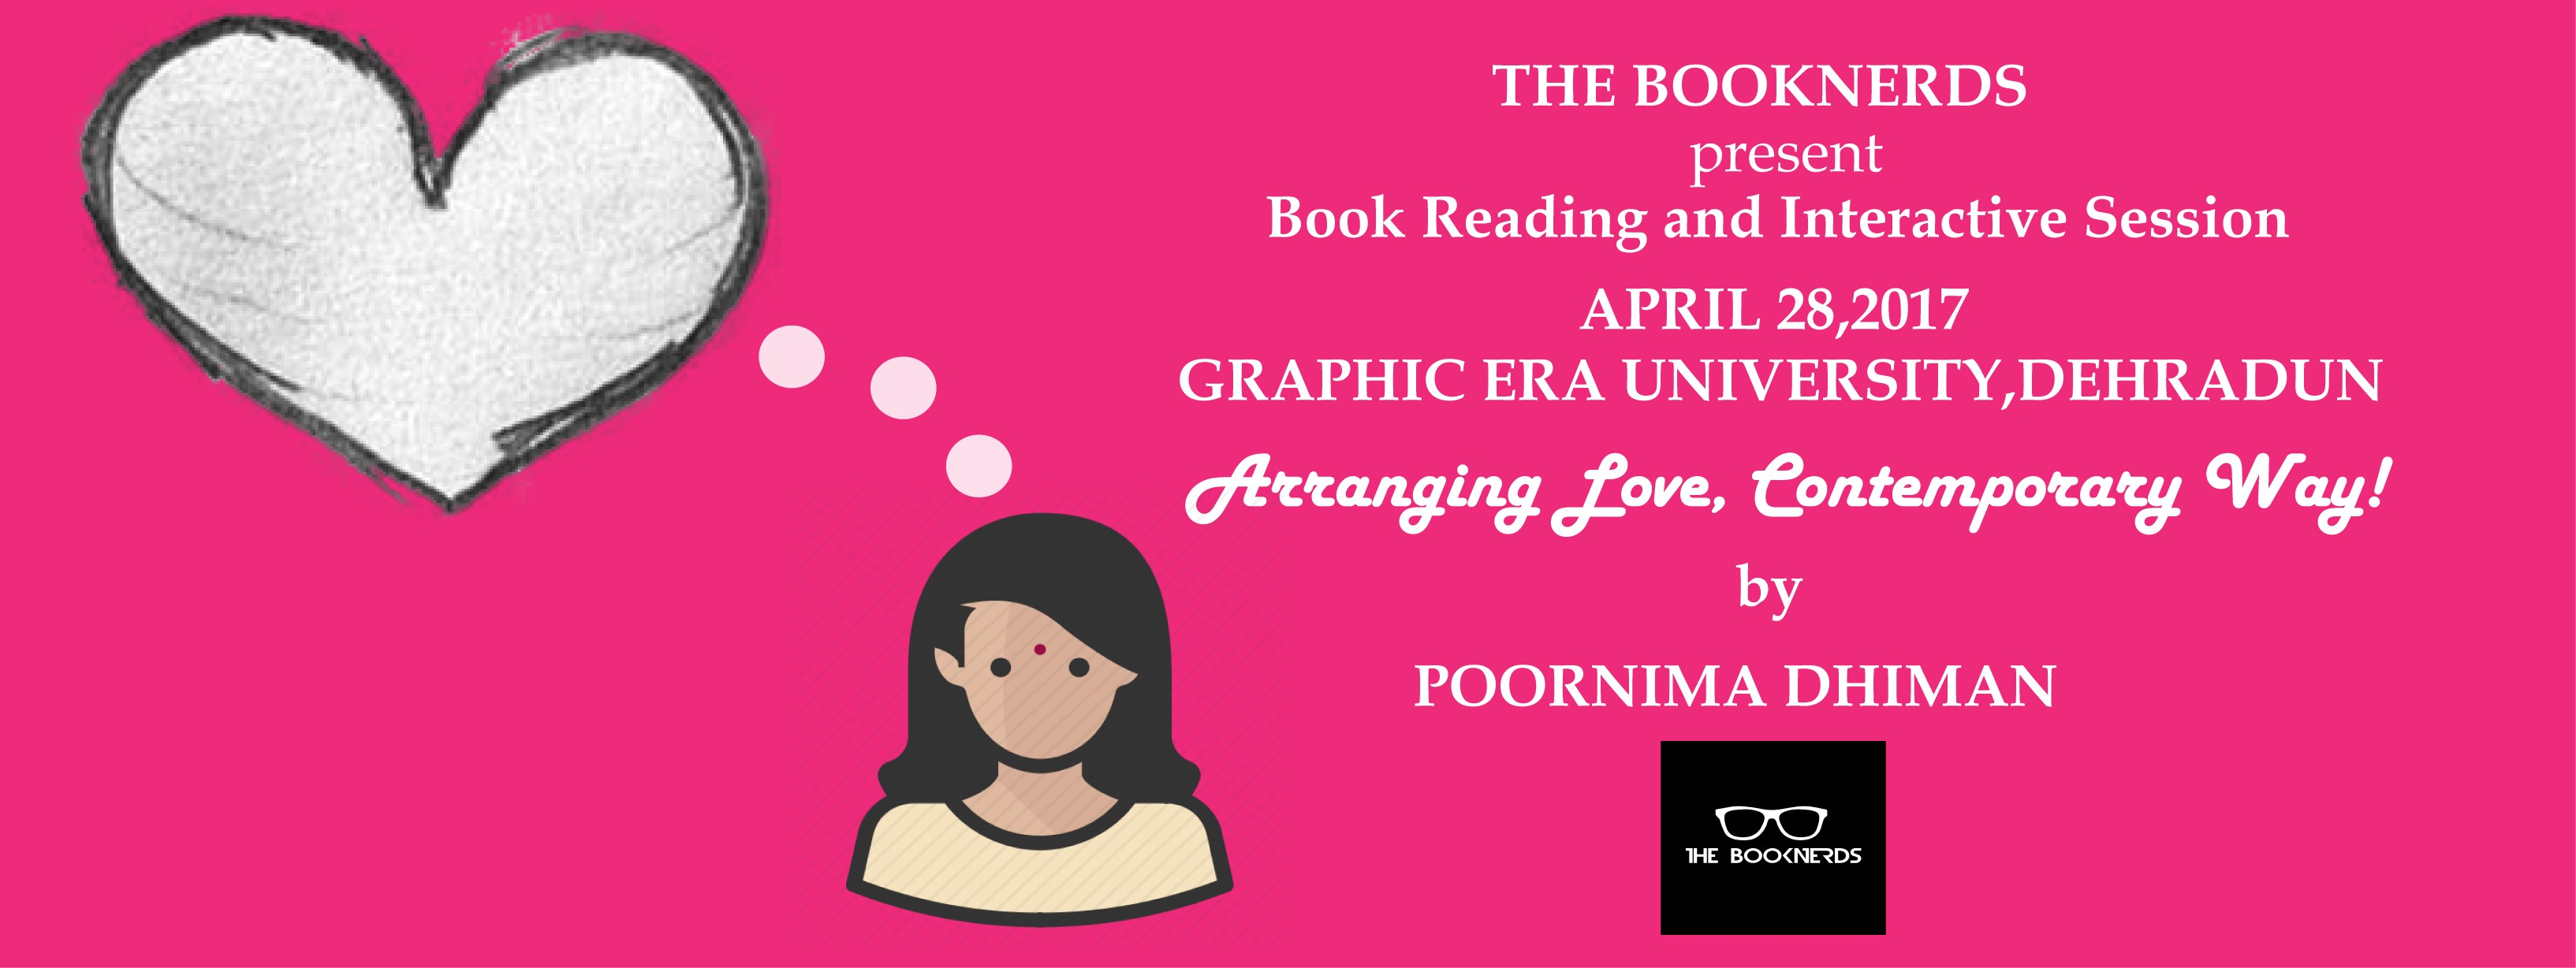 Book Reading and Interactive Session with Poornima Dhiman